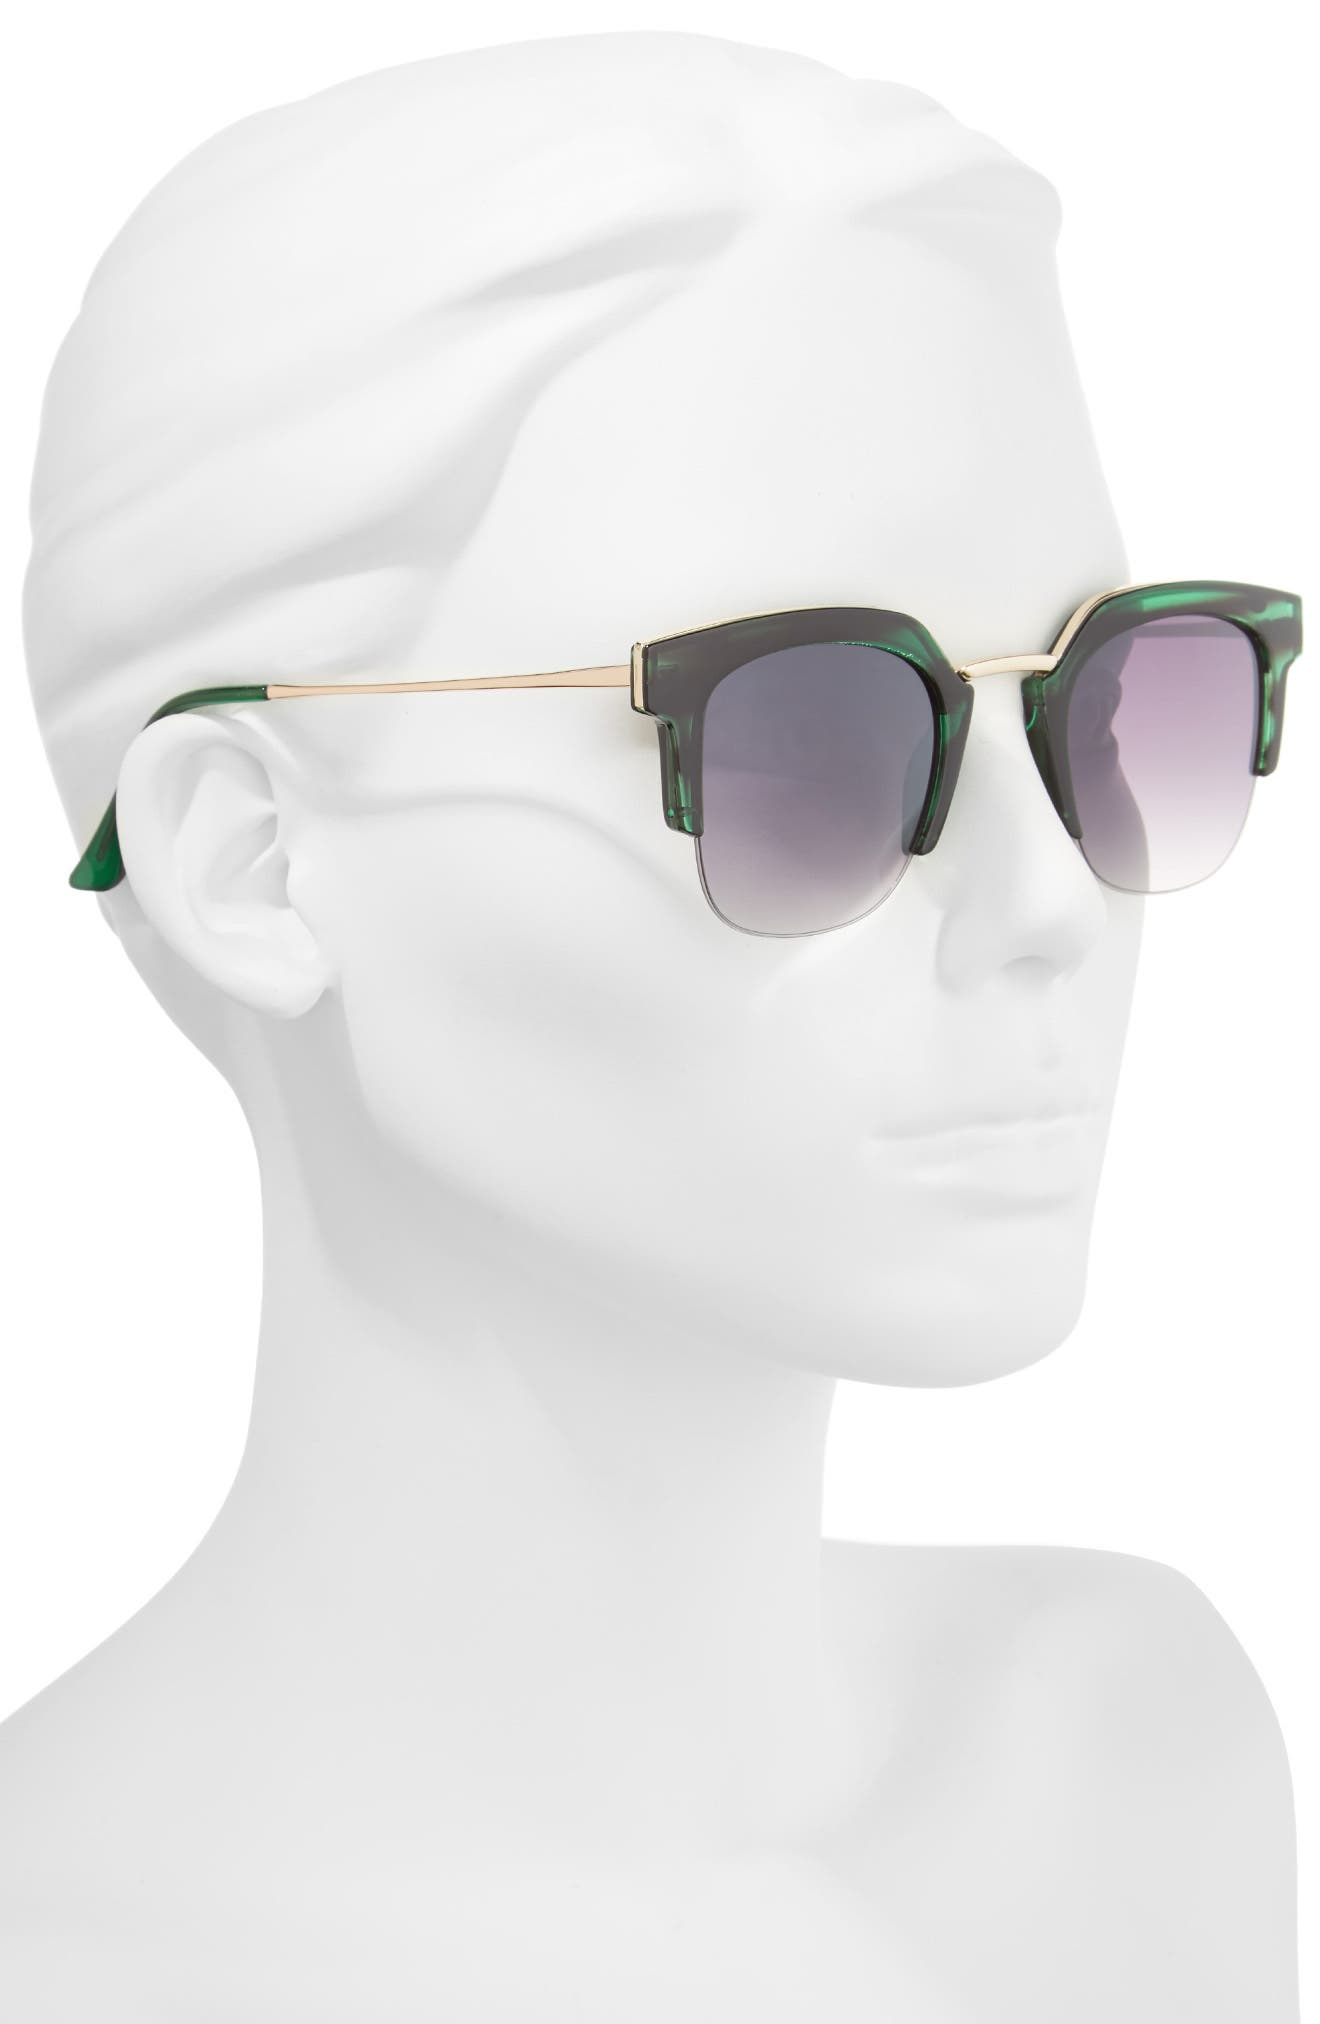 47mm Retro Sunglasses,                             Alternate thumbnail 2, color,                             Green